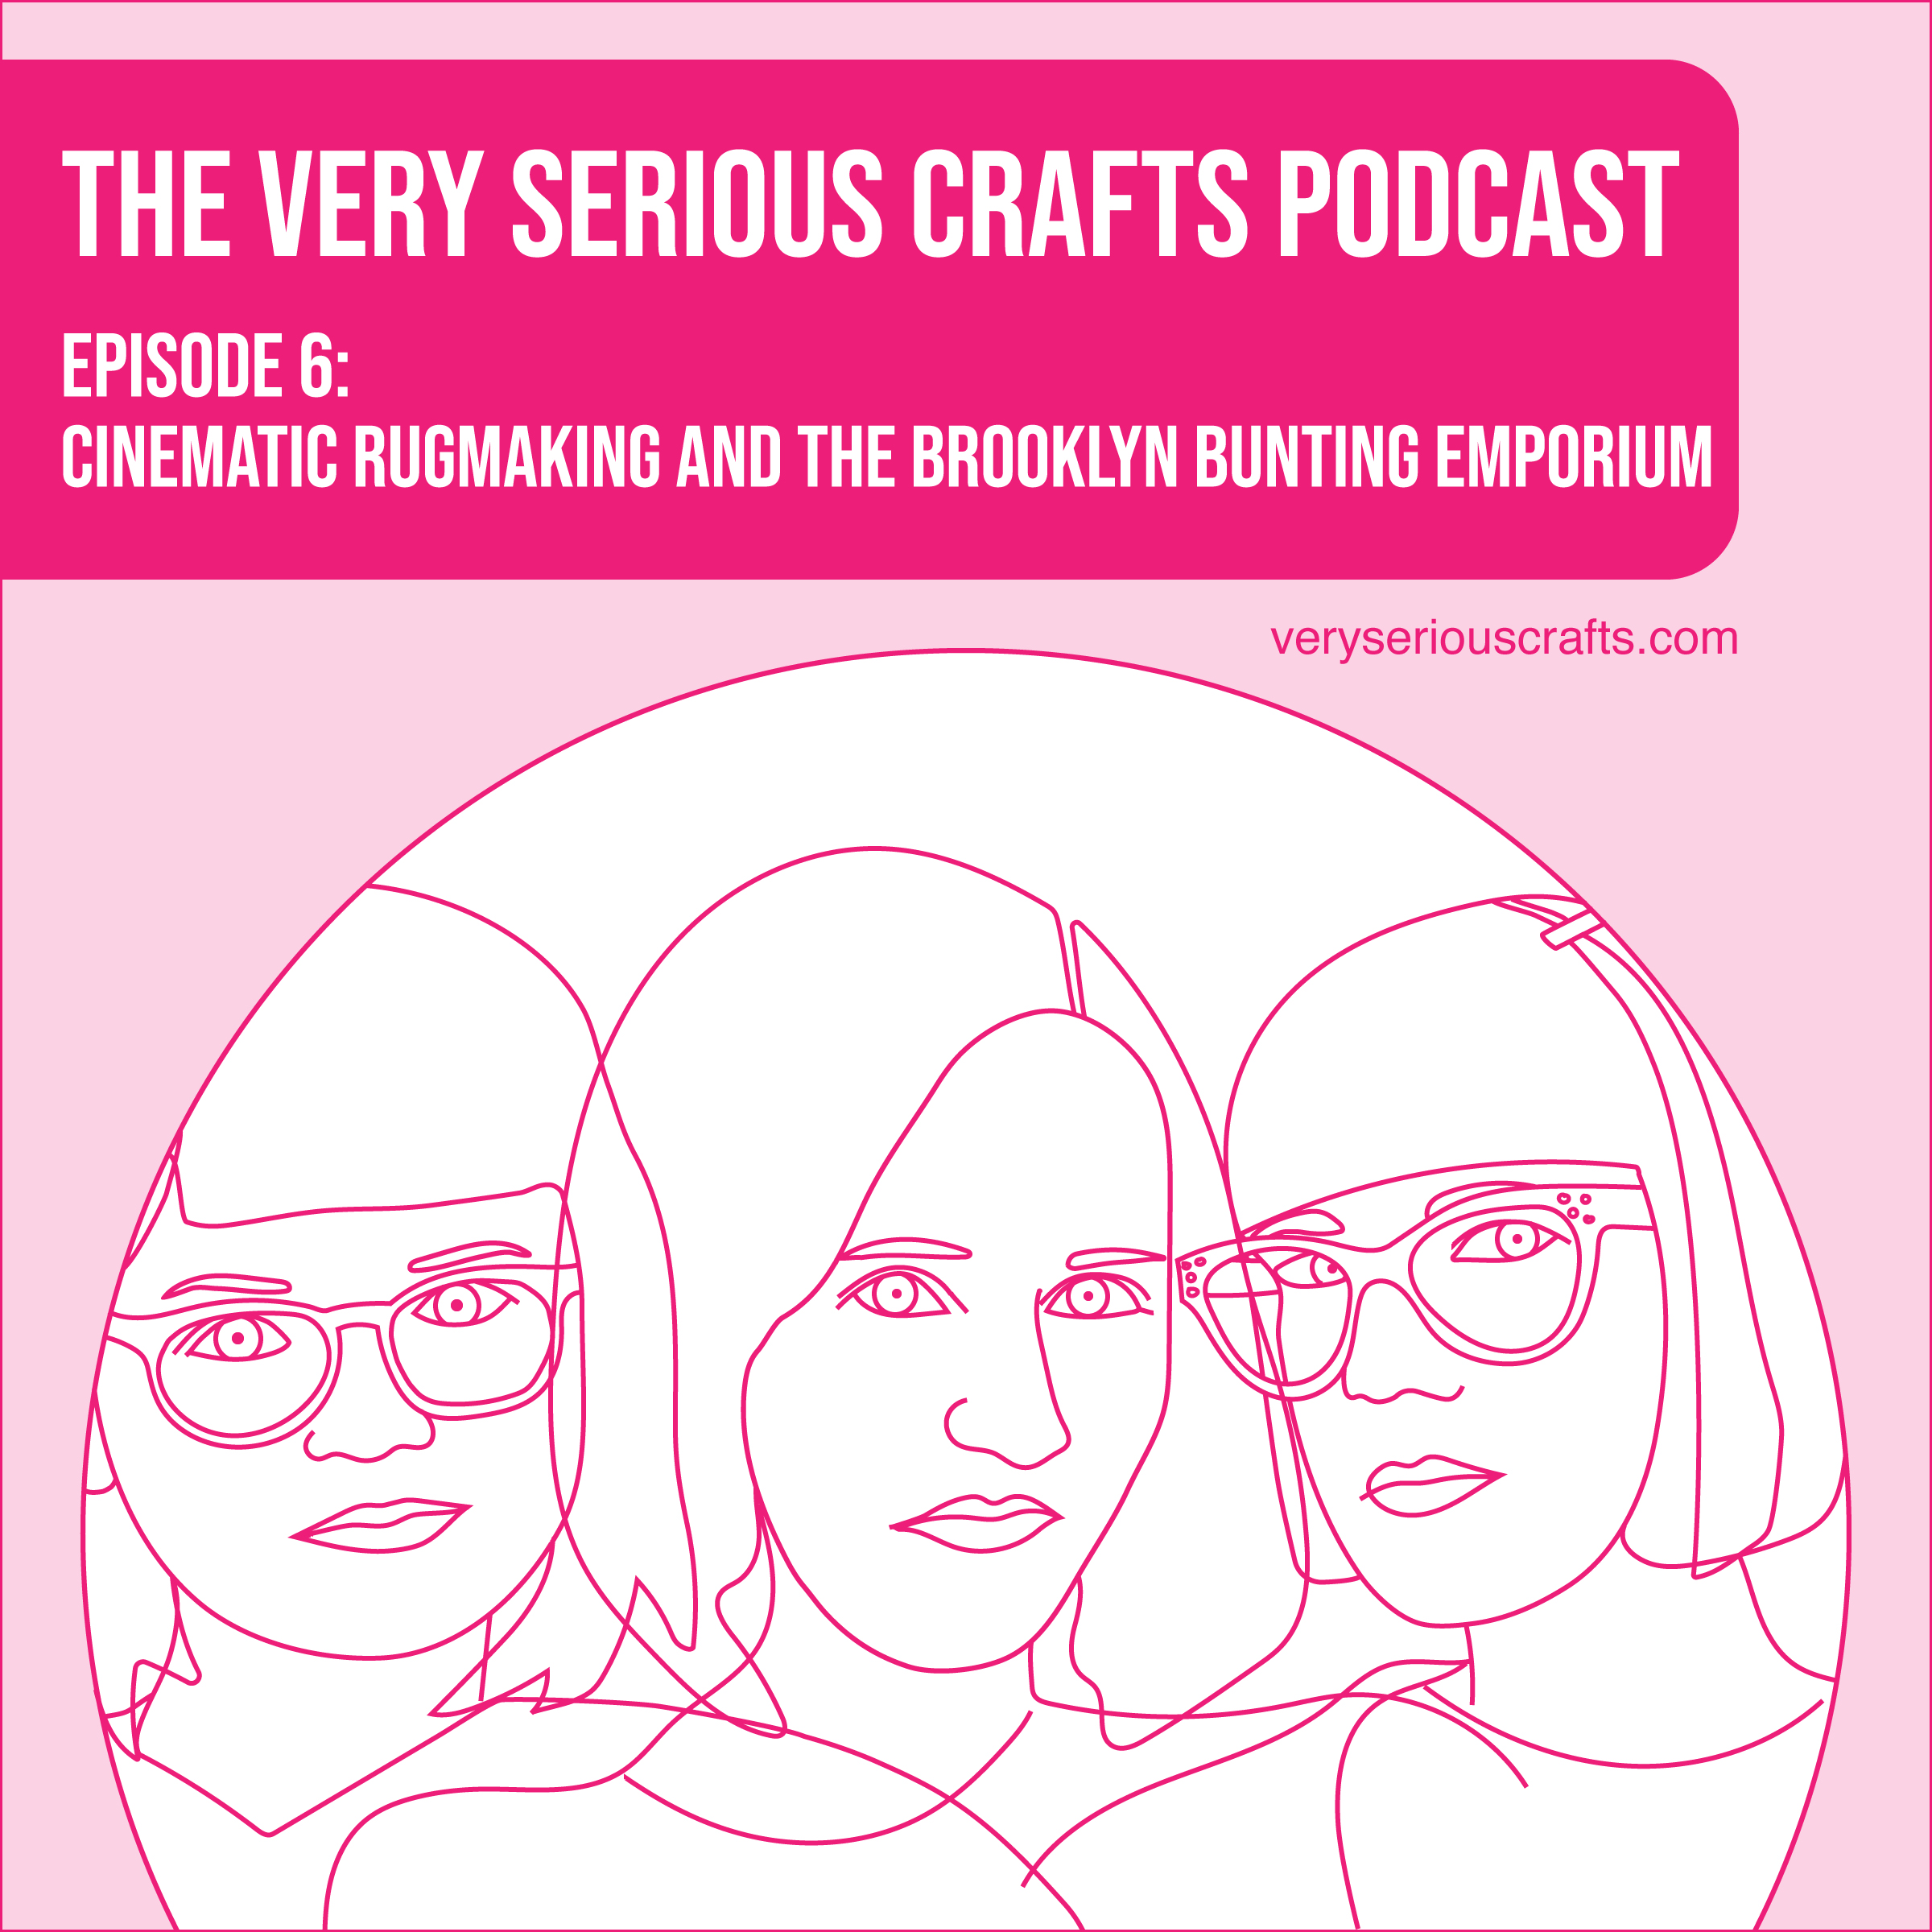 S1E06: Cinematic Rugmaking and the Brooklyn Bunting Emporium